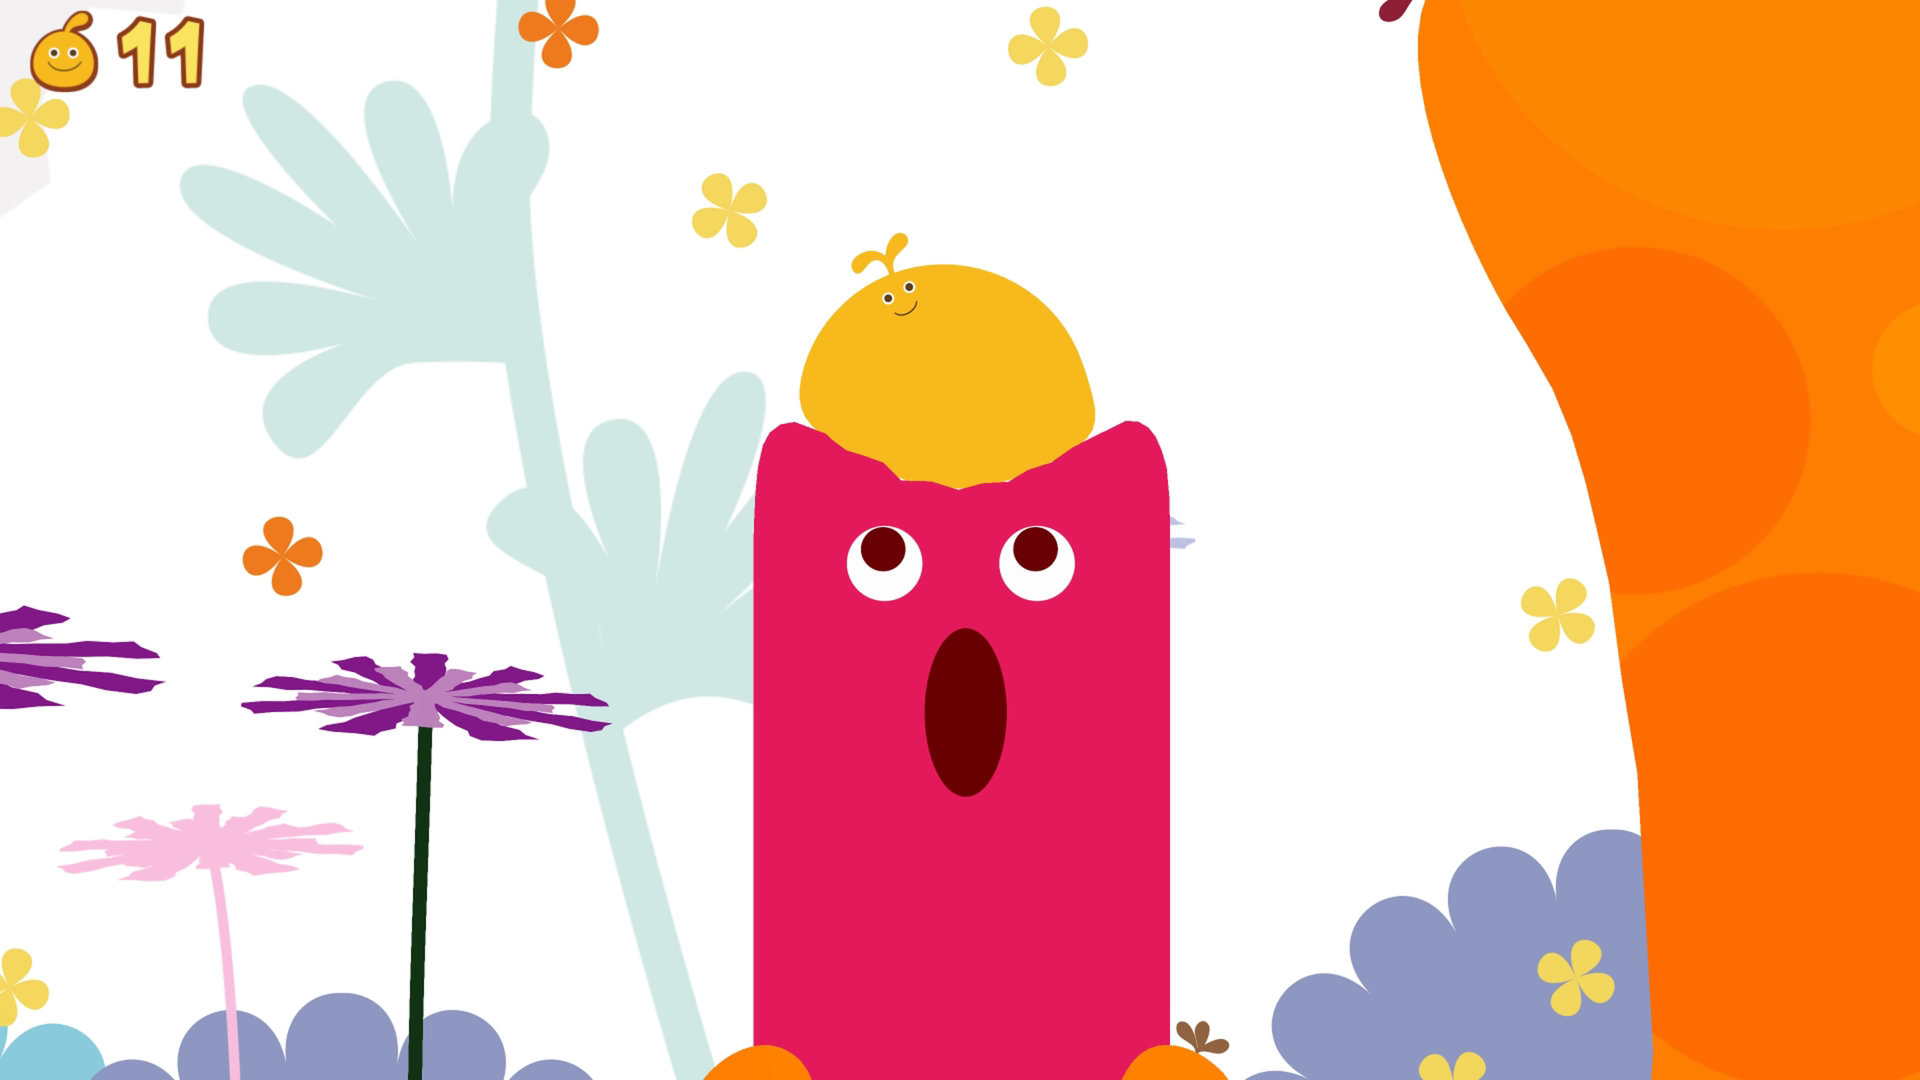 locoroco-screen-02-ps4-eu-26apr17